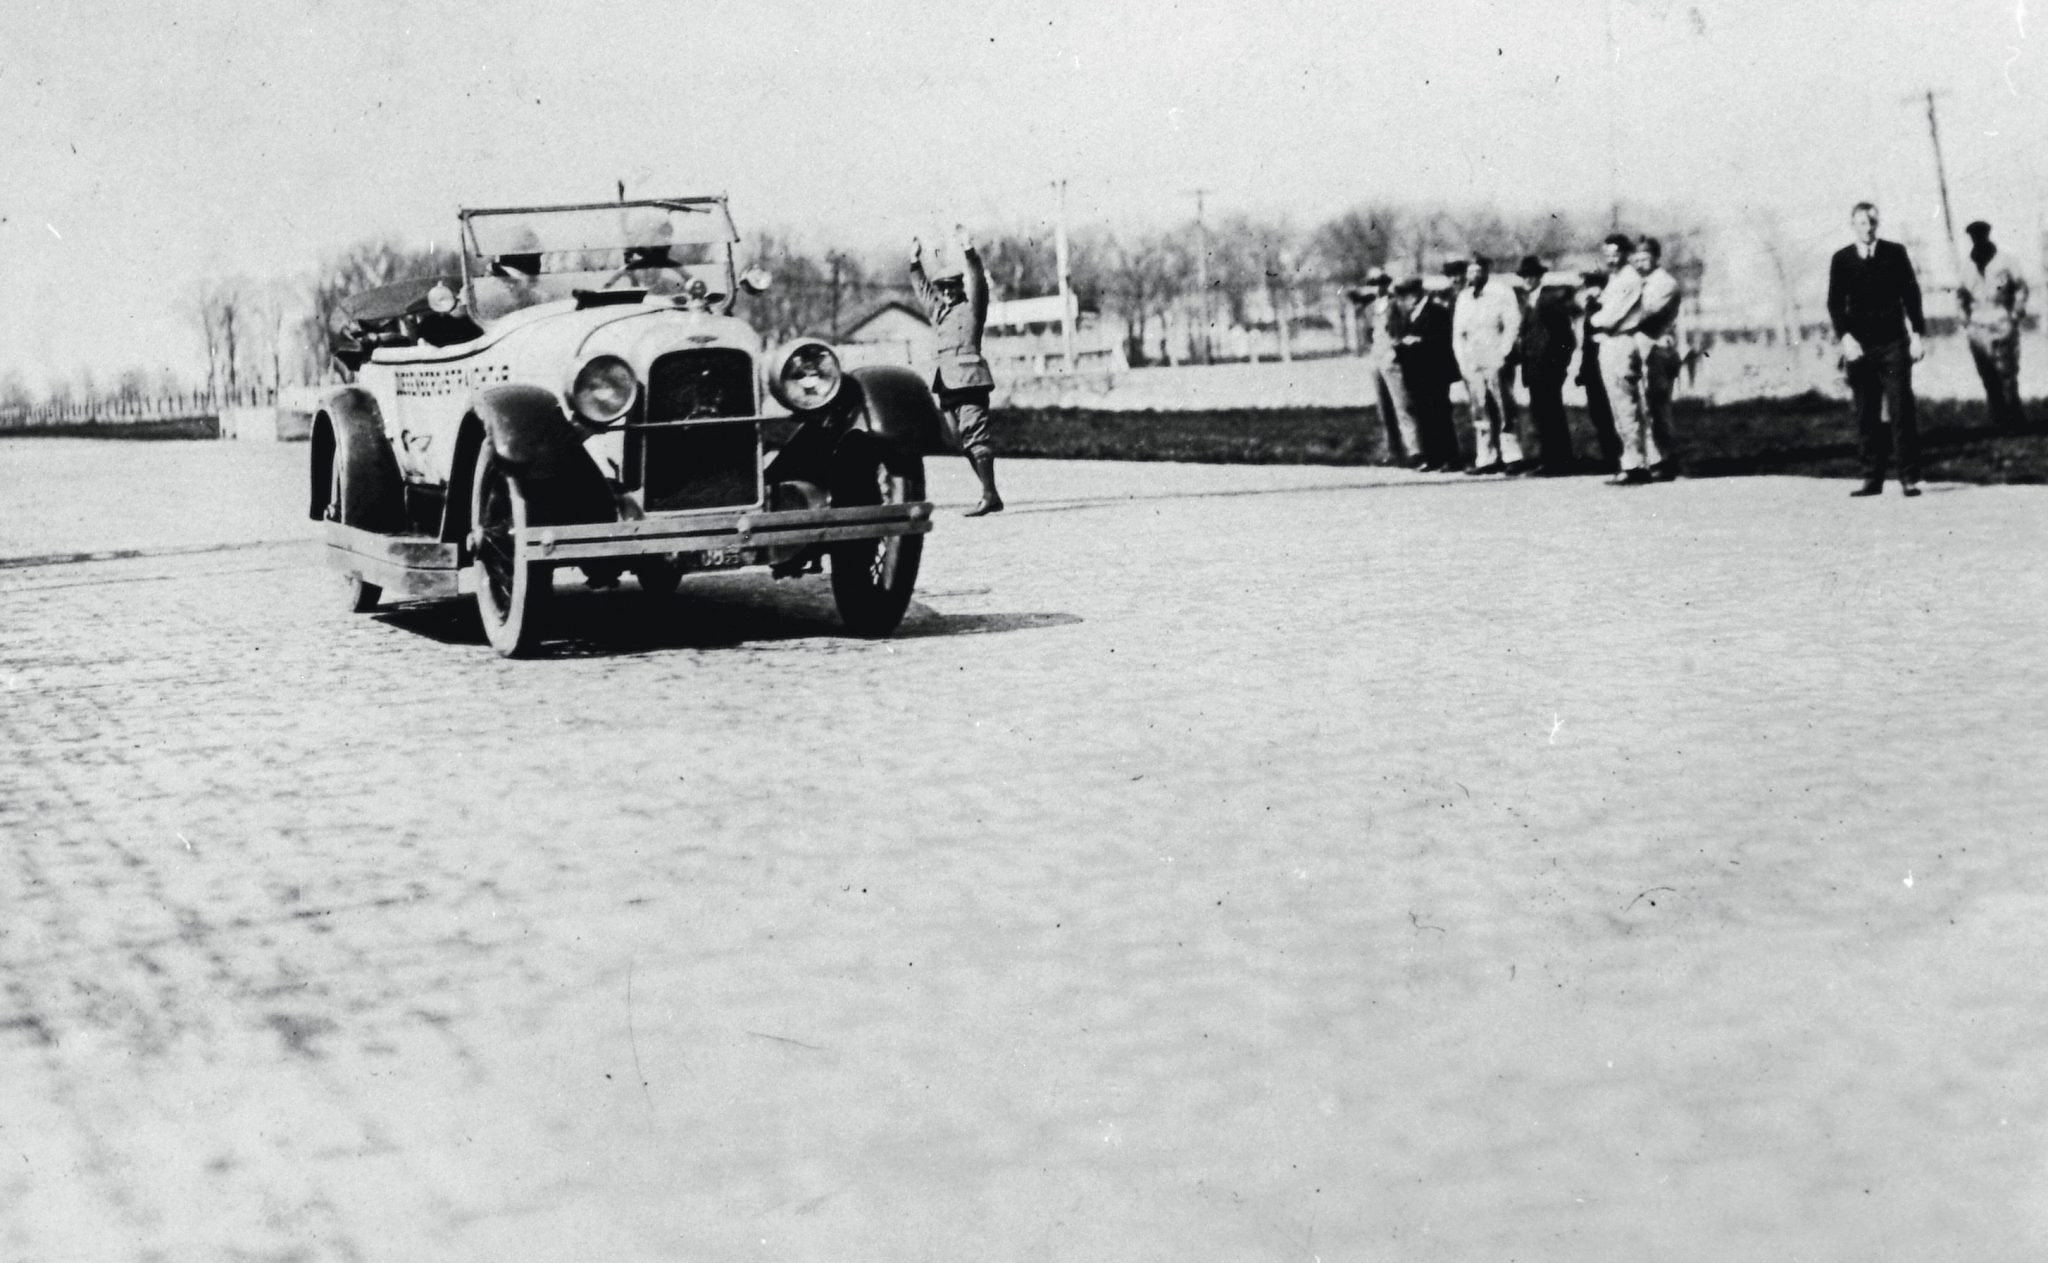 For the 1923 Indianapolis 500, Fred Duesenberg drove the pace car, the very same Model A phaeton that had amassed 18,000 test miles the previous month on the Indy oval.